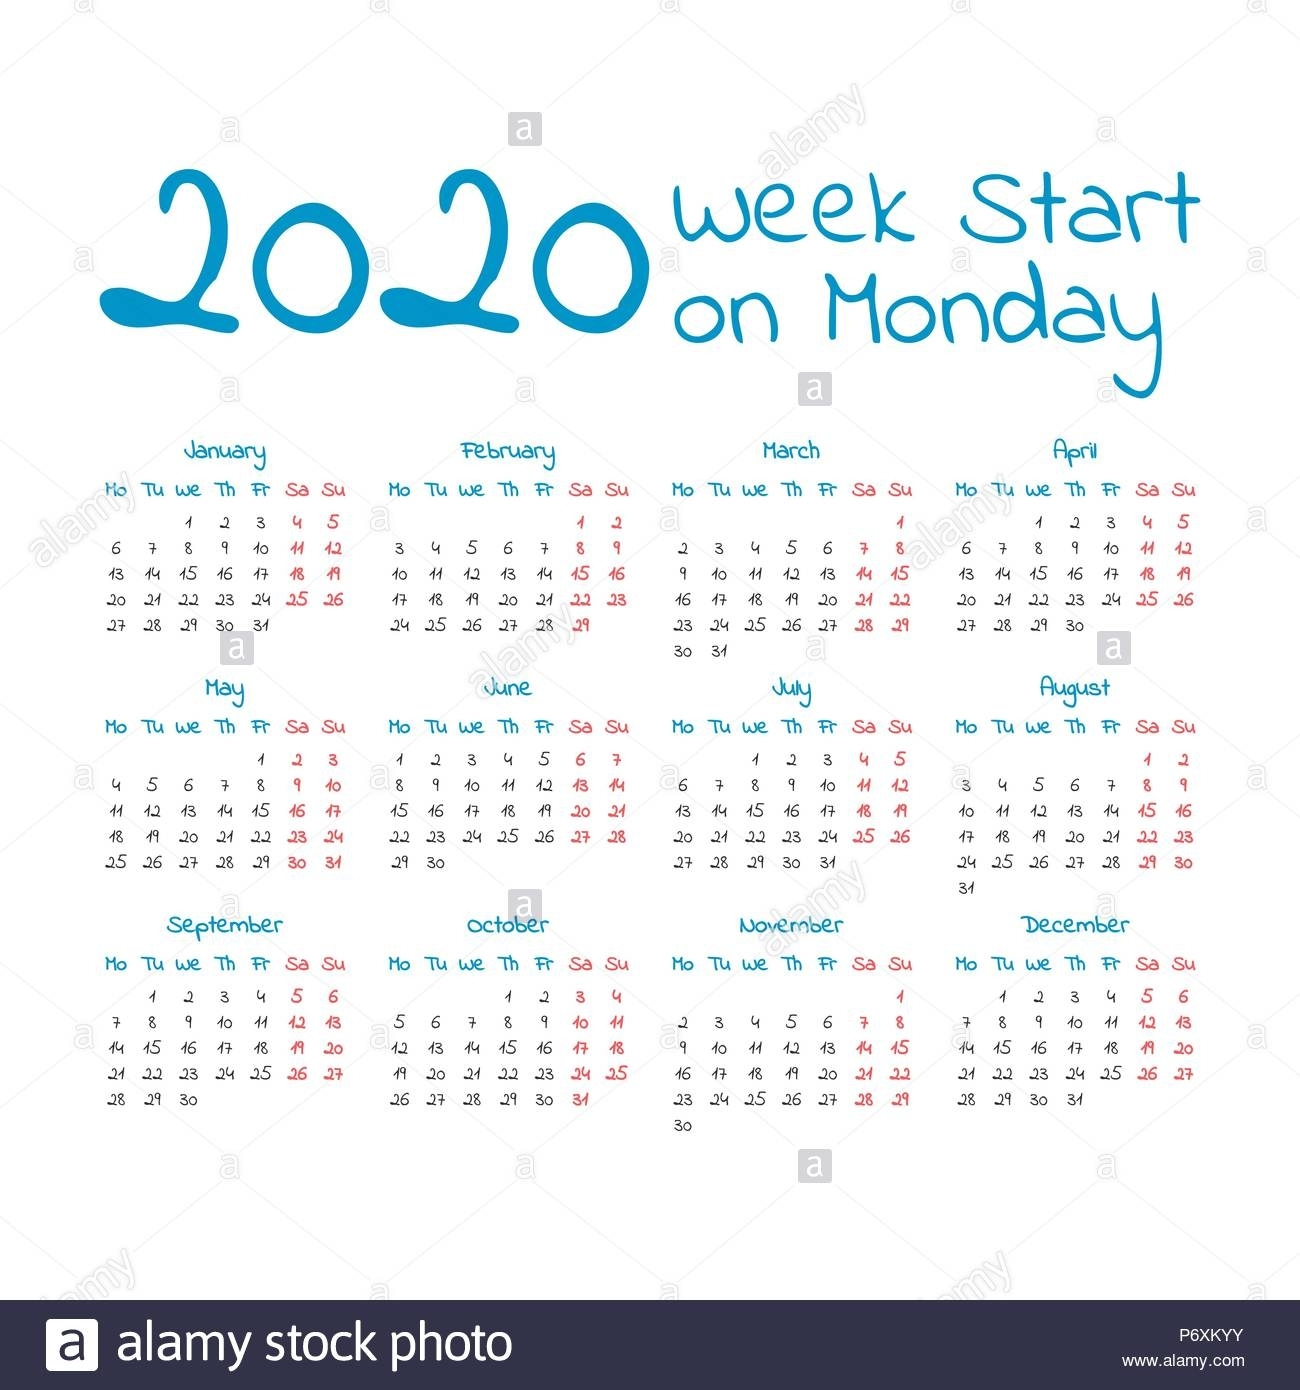 Monday Start Calendar 2020 - Colona.rsd7 with regard to 2020 Calendar Starting On The Monday